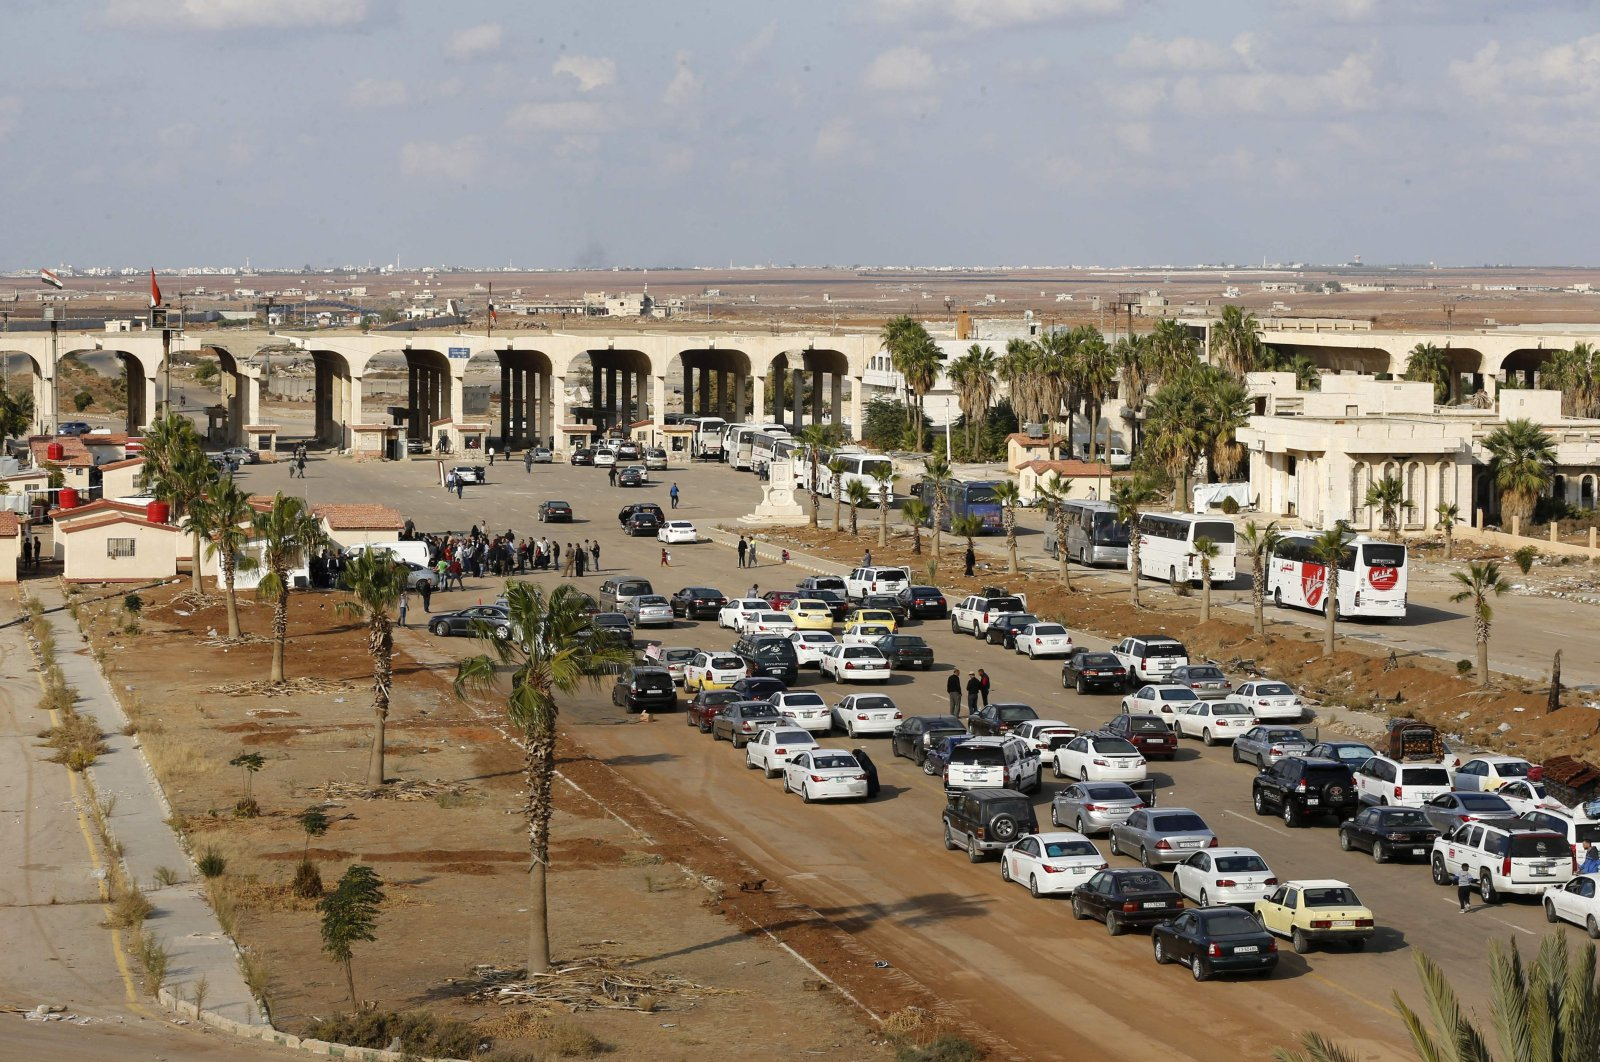 Vehicles wait to cross into Syria at the recently reopened Nassib/Jaber border post in Daraa province, at the Syrian-Jordanian border south of Damascus, Nov. 7, 2018 (AFP File Photo)